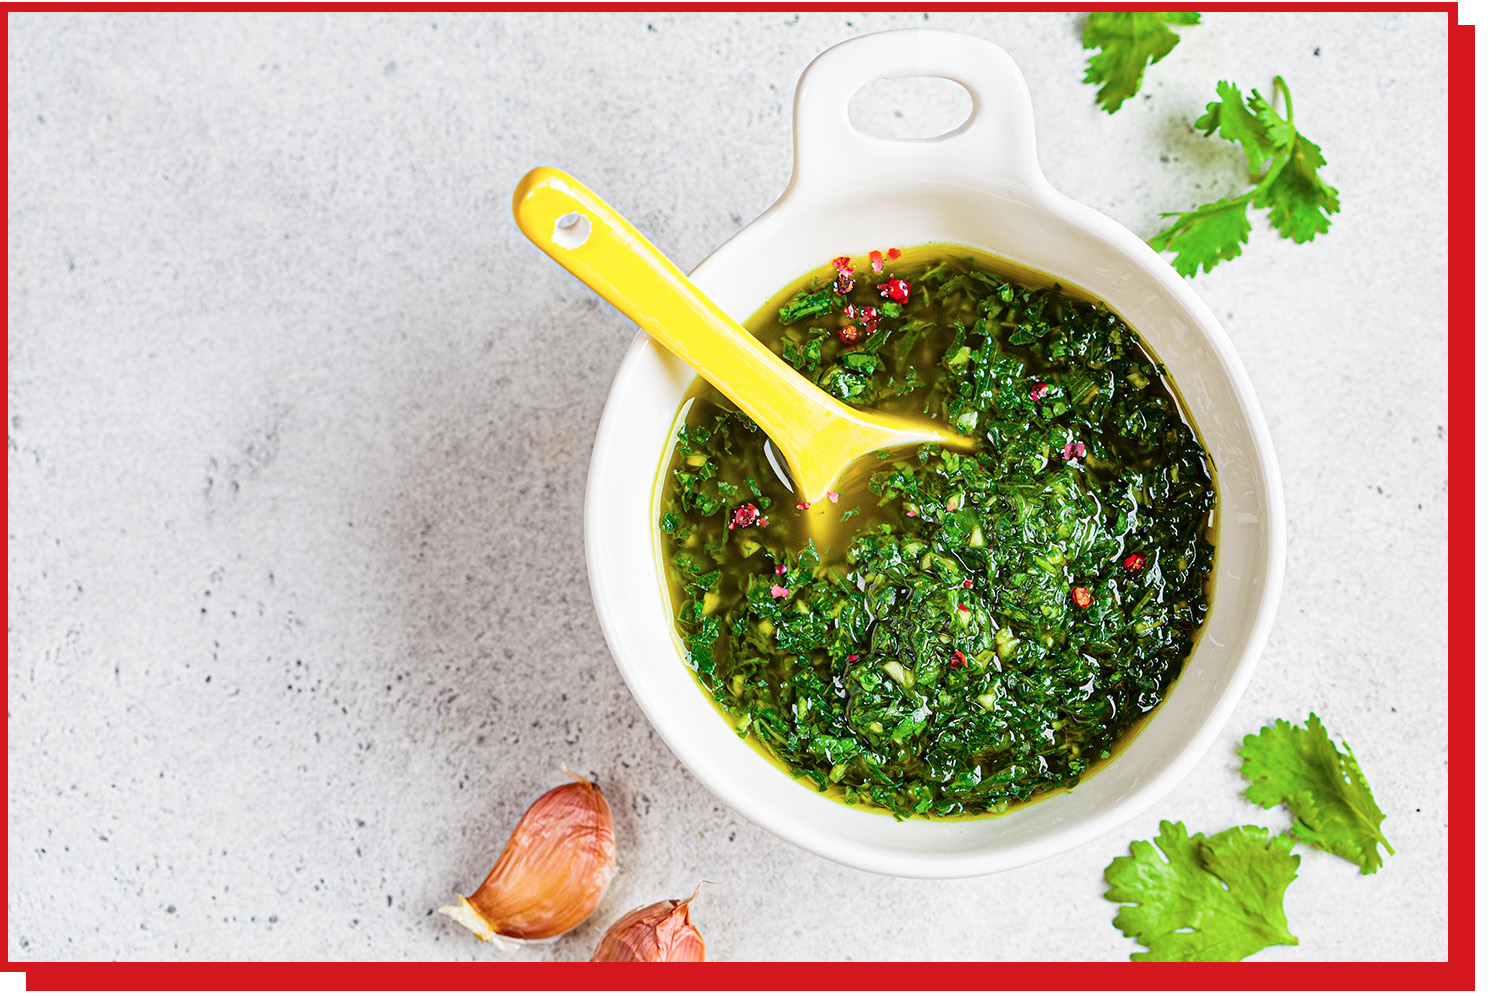 Finely chopped green herbs in olive oil in a ramekin with ceramic spoon.